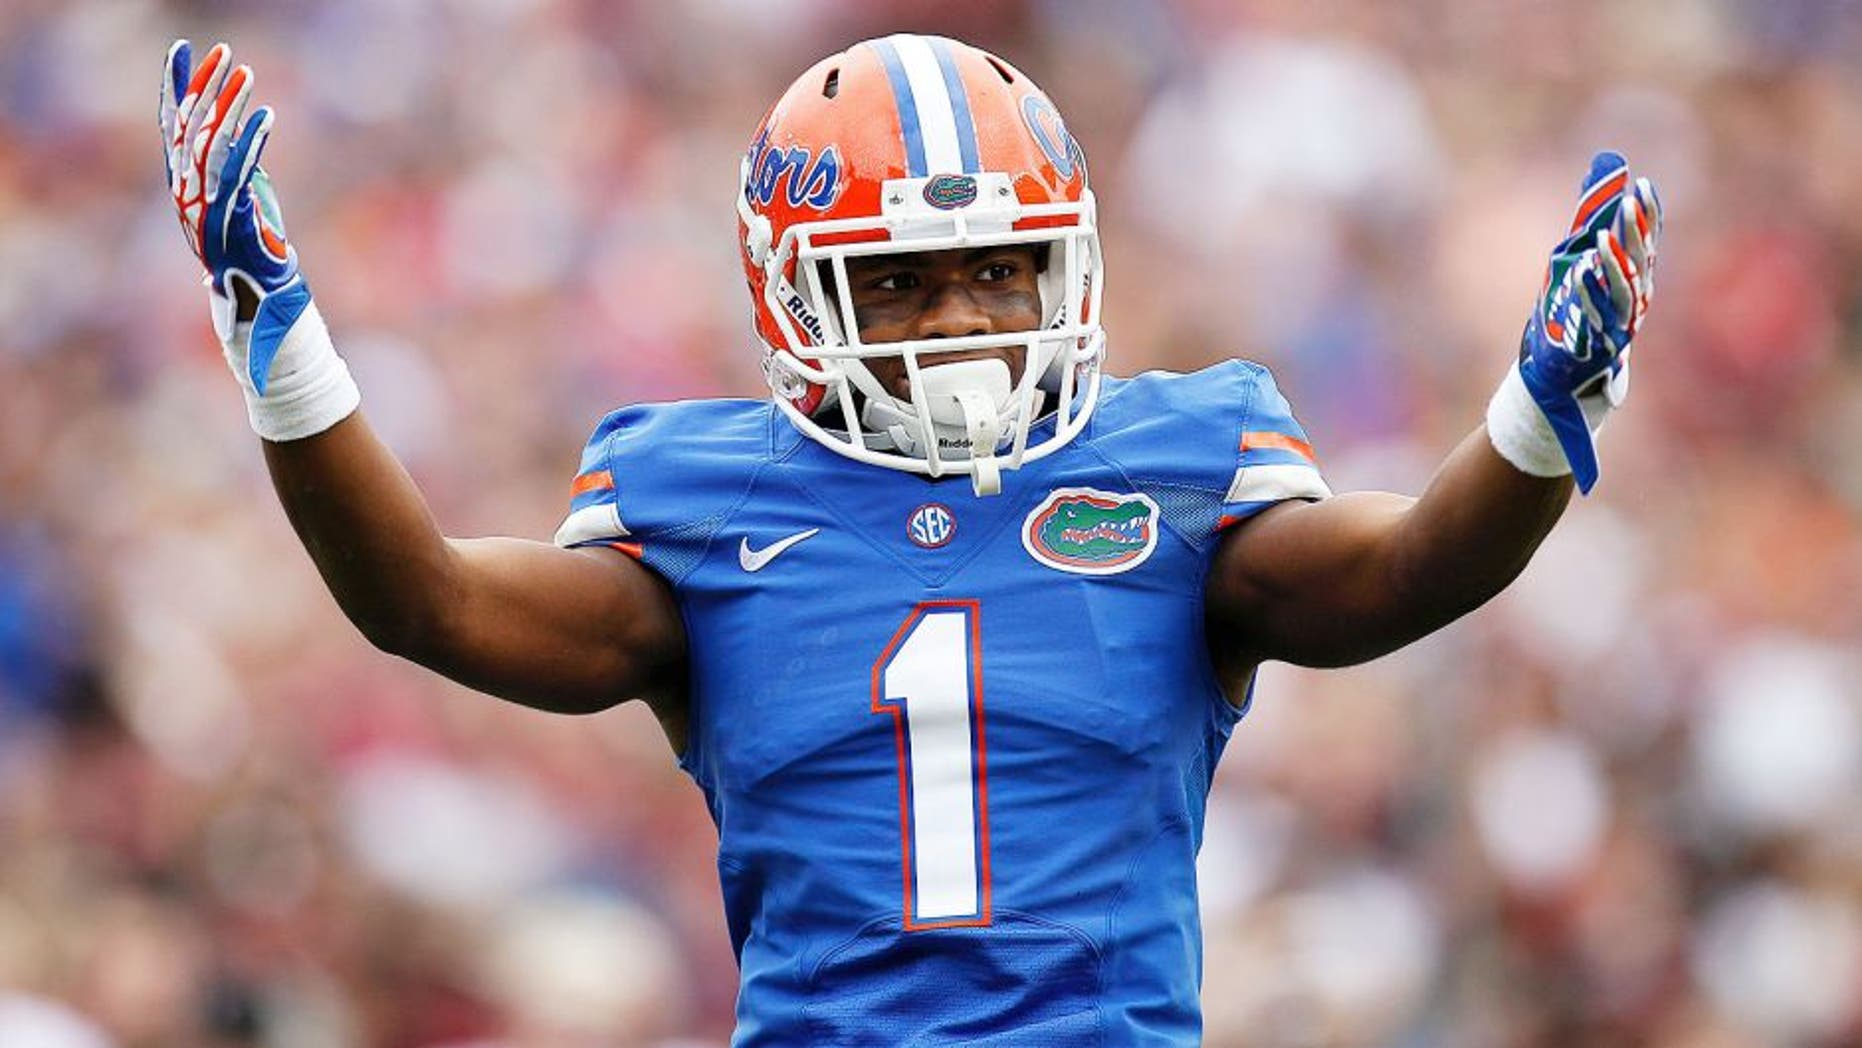 GAINESVILLE, FL - NOVEMBER 30: Cornerback Vernon Hargreaves III #1 of the Florida Gators during the game against the Florida State Seminoles at Ben Hill Griffin Stadium on November 30, 2013 in Gainesville, Florida. 2nd Ranked Florida State defeated Florida 37-7. (Photo by Don Juan Moore/Getty Images)